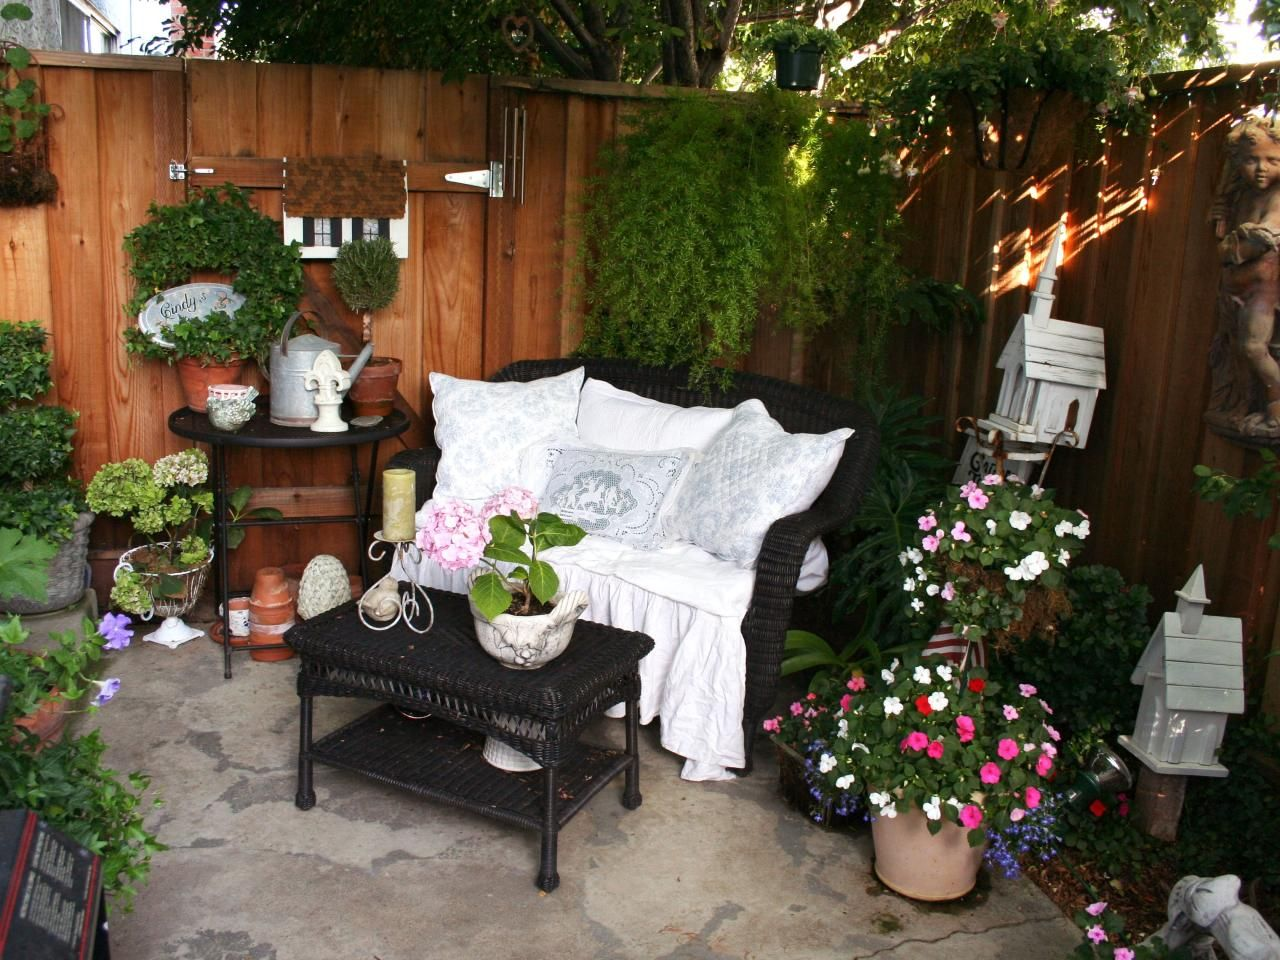 10 Favorite Rate My Space Outdoor Rooms on a Budget | Hgtv ...